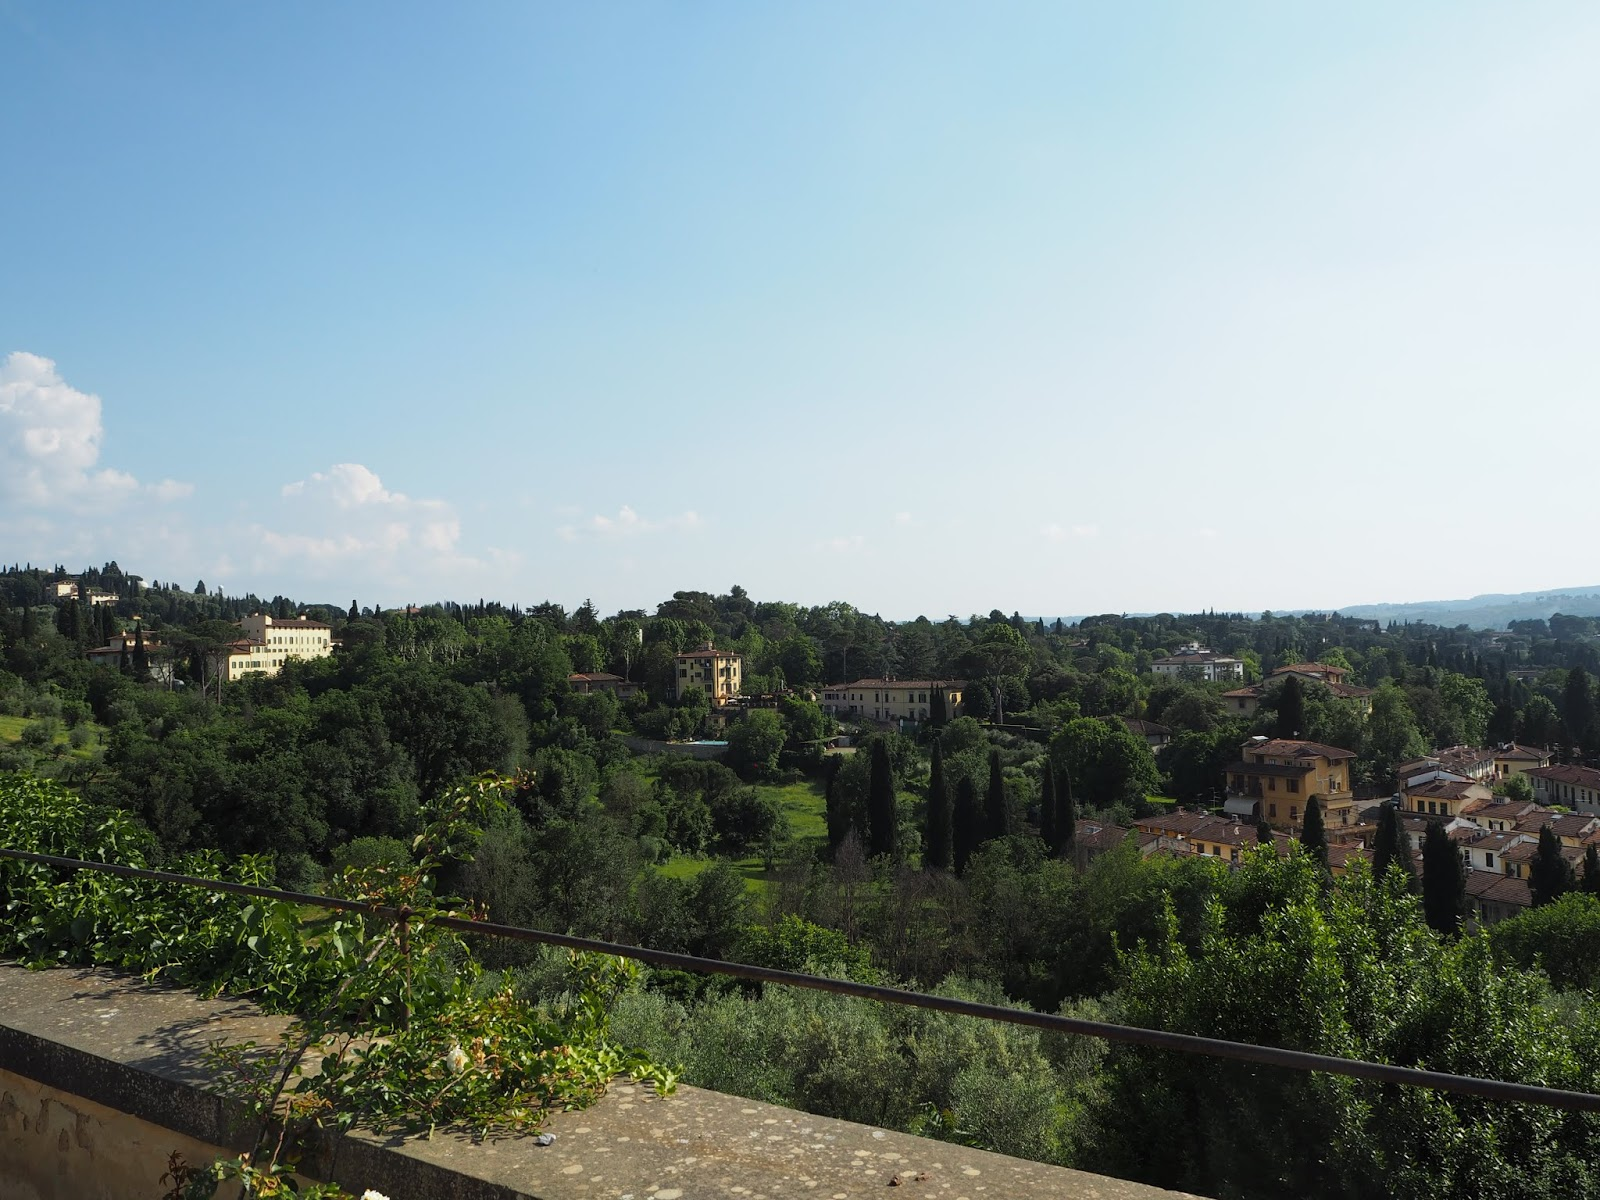 florentine villas in the surrounding hills of florence